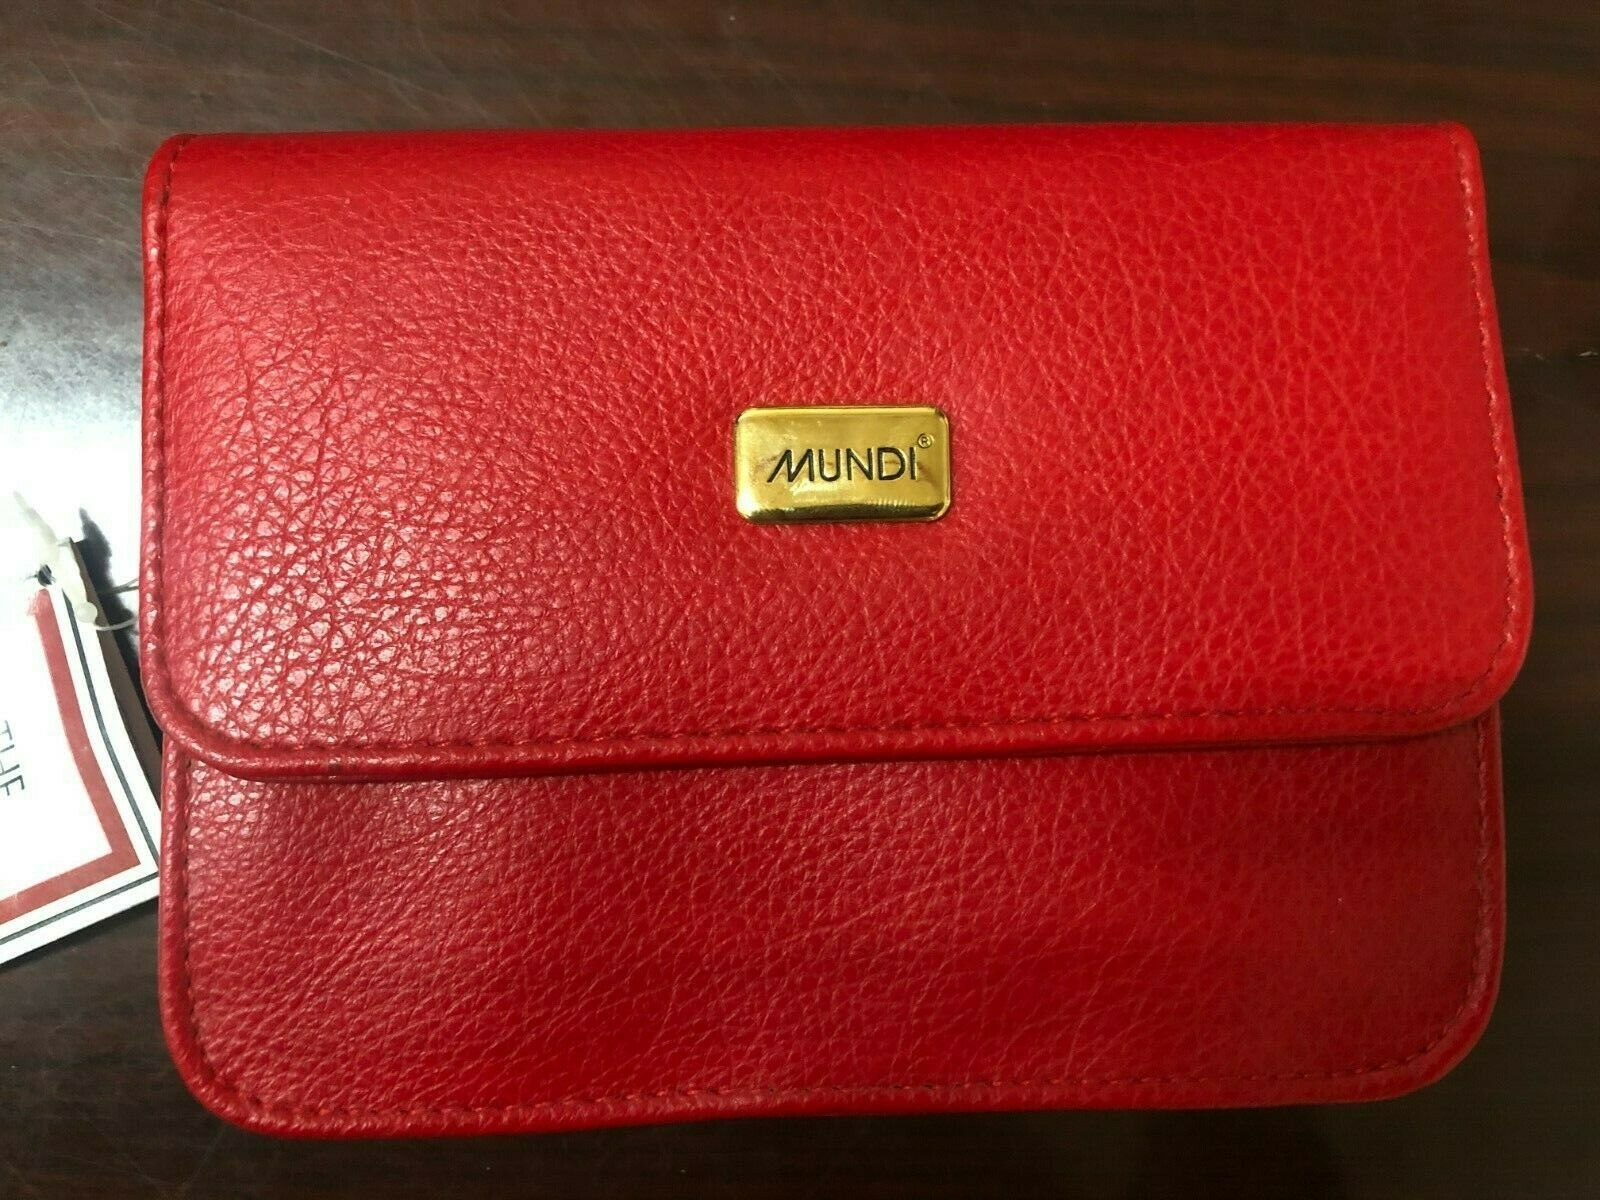 Mundi Vintage Red Leather Small Purse Shoulder Strap Handbag - NEW with tags